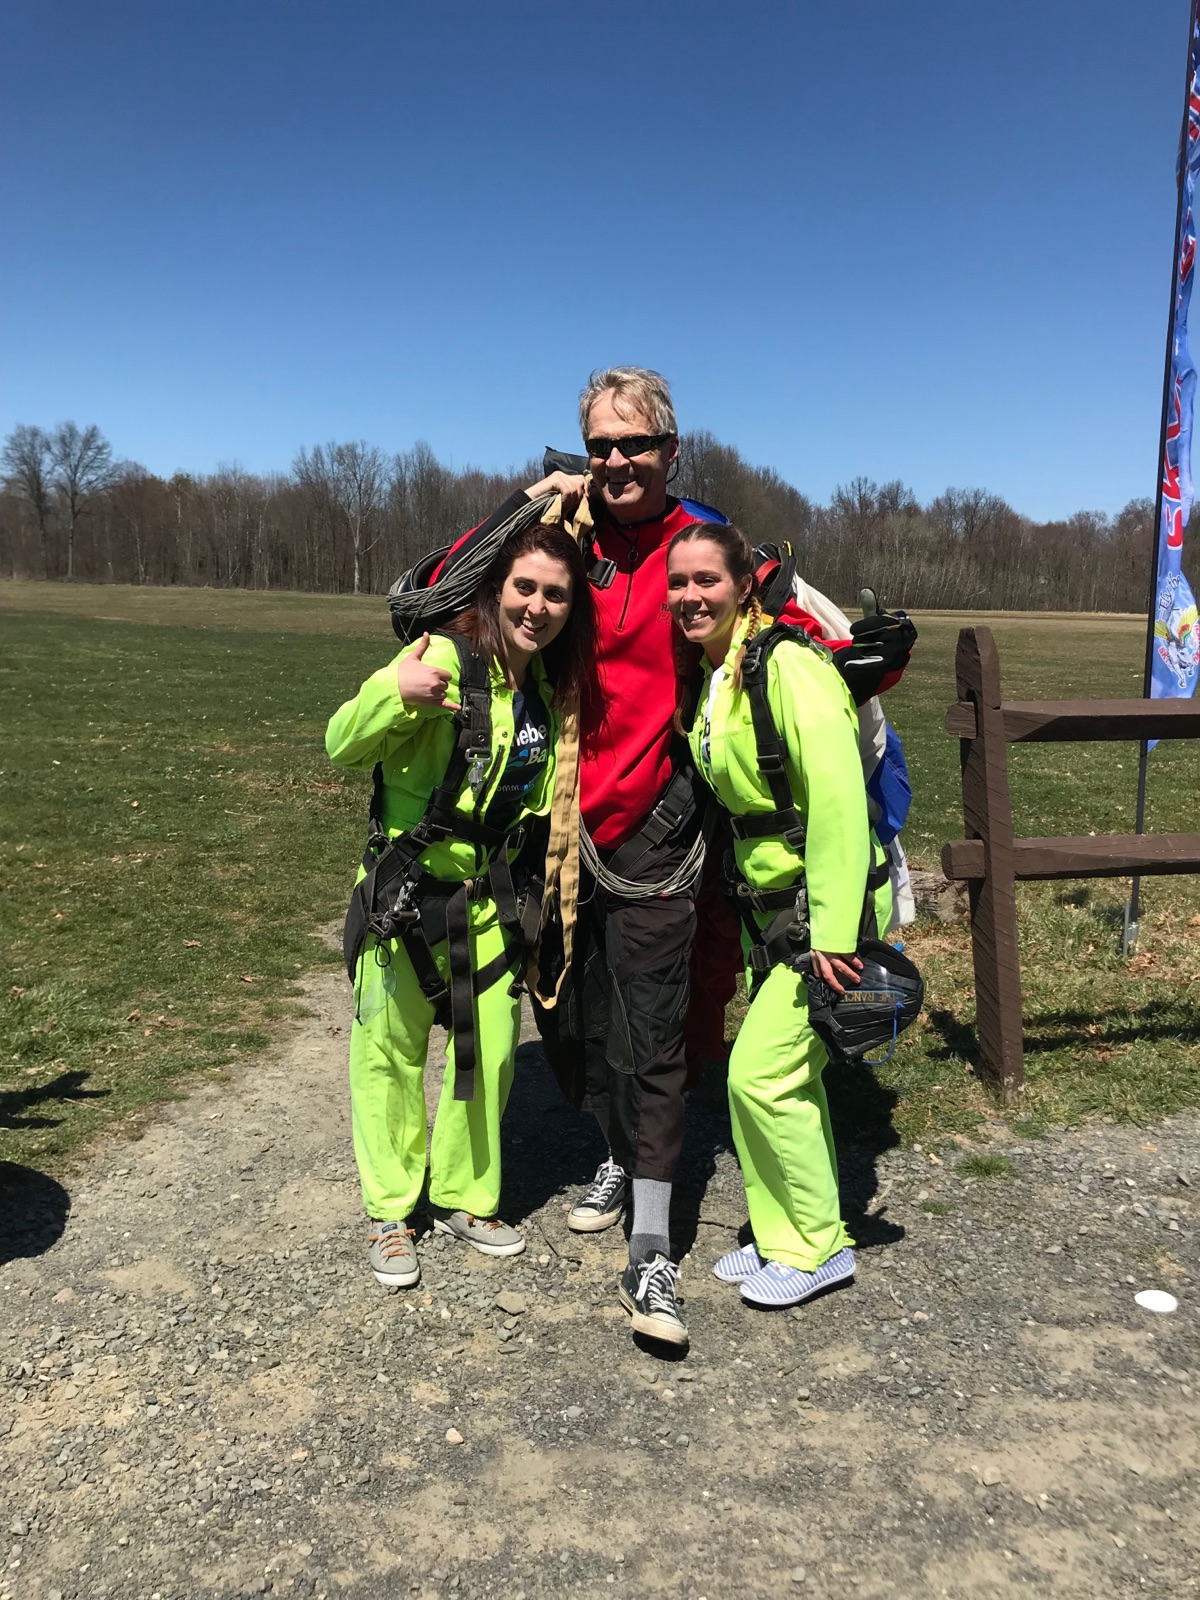 Stefania Riccitelli, Becky Bova - skydiving photo